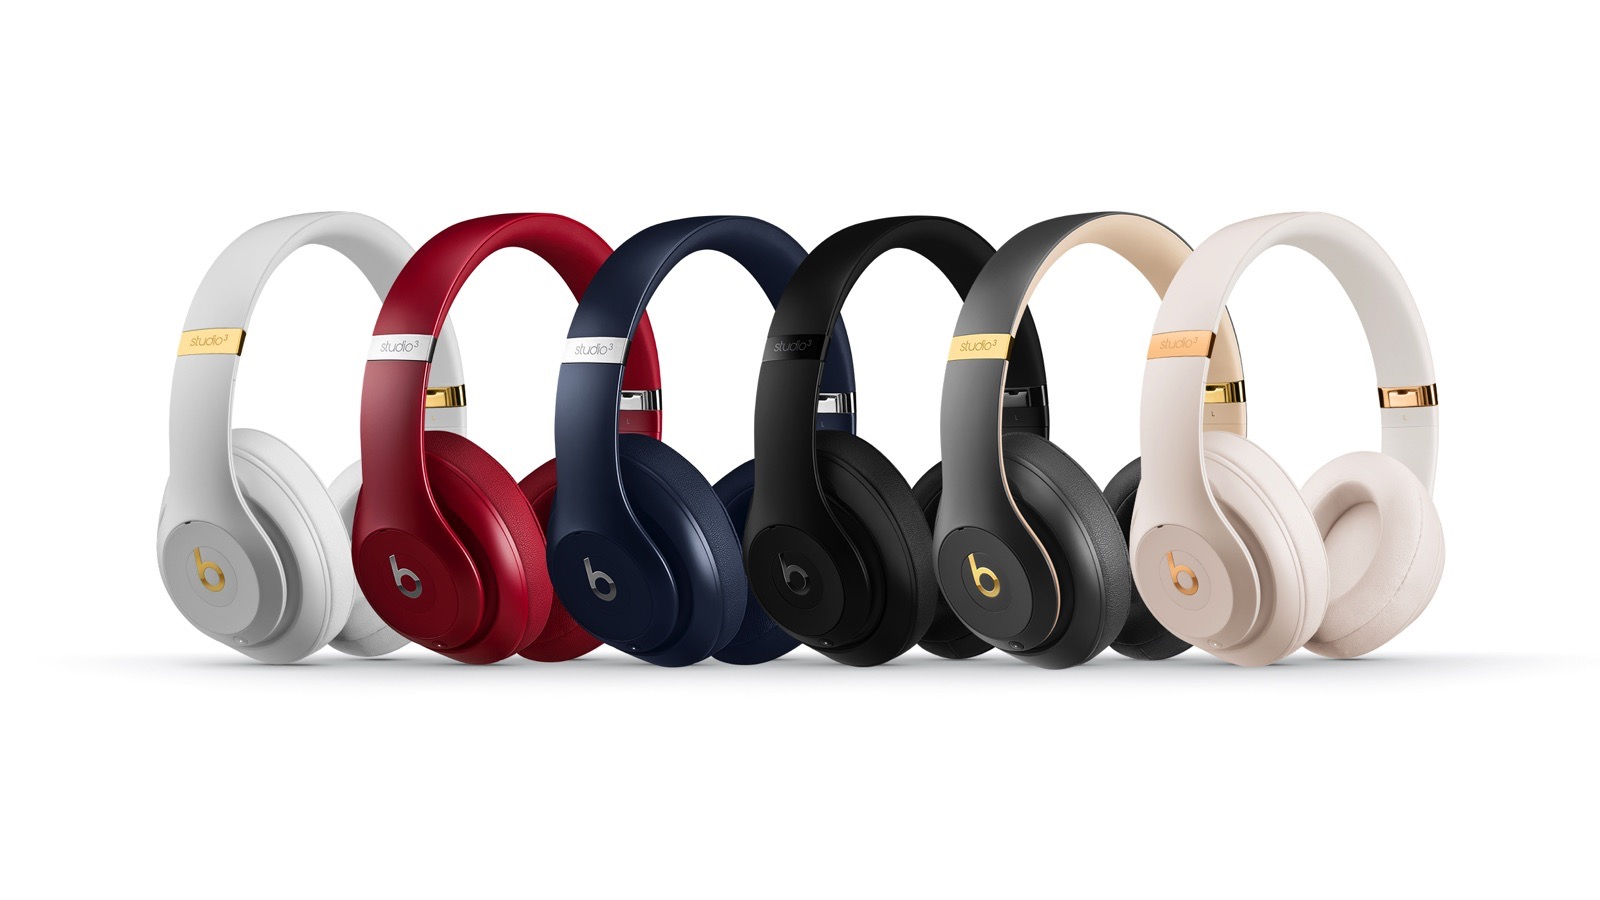 Beats' Studio3 headphones pack improved features at a lower price